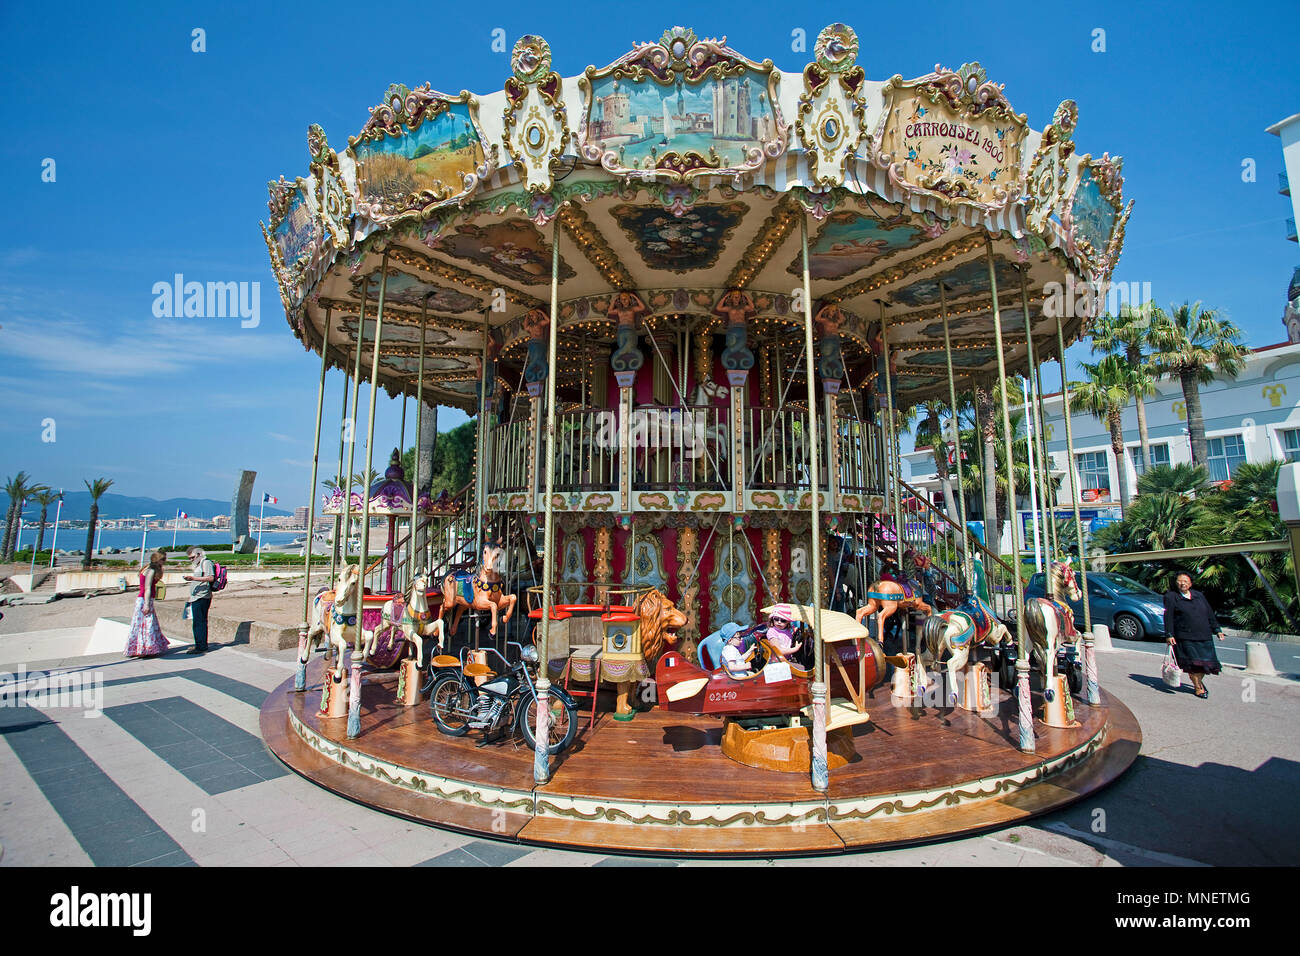 Kinderkarussell Stock Photos Kinderkarussell Stock Images Alamy